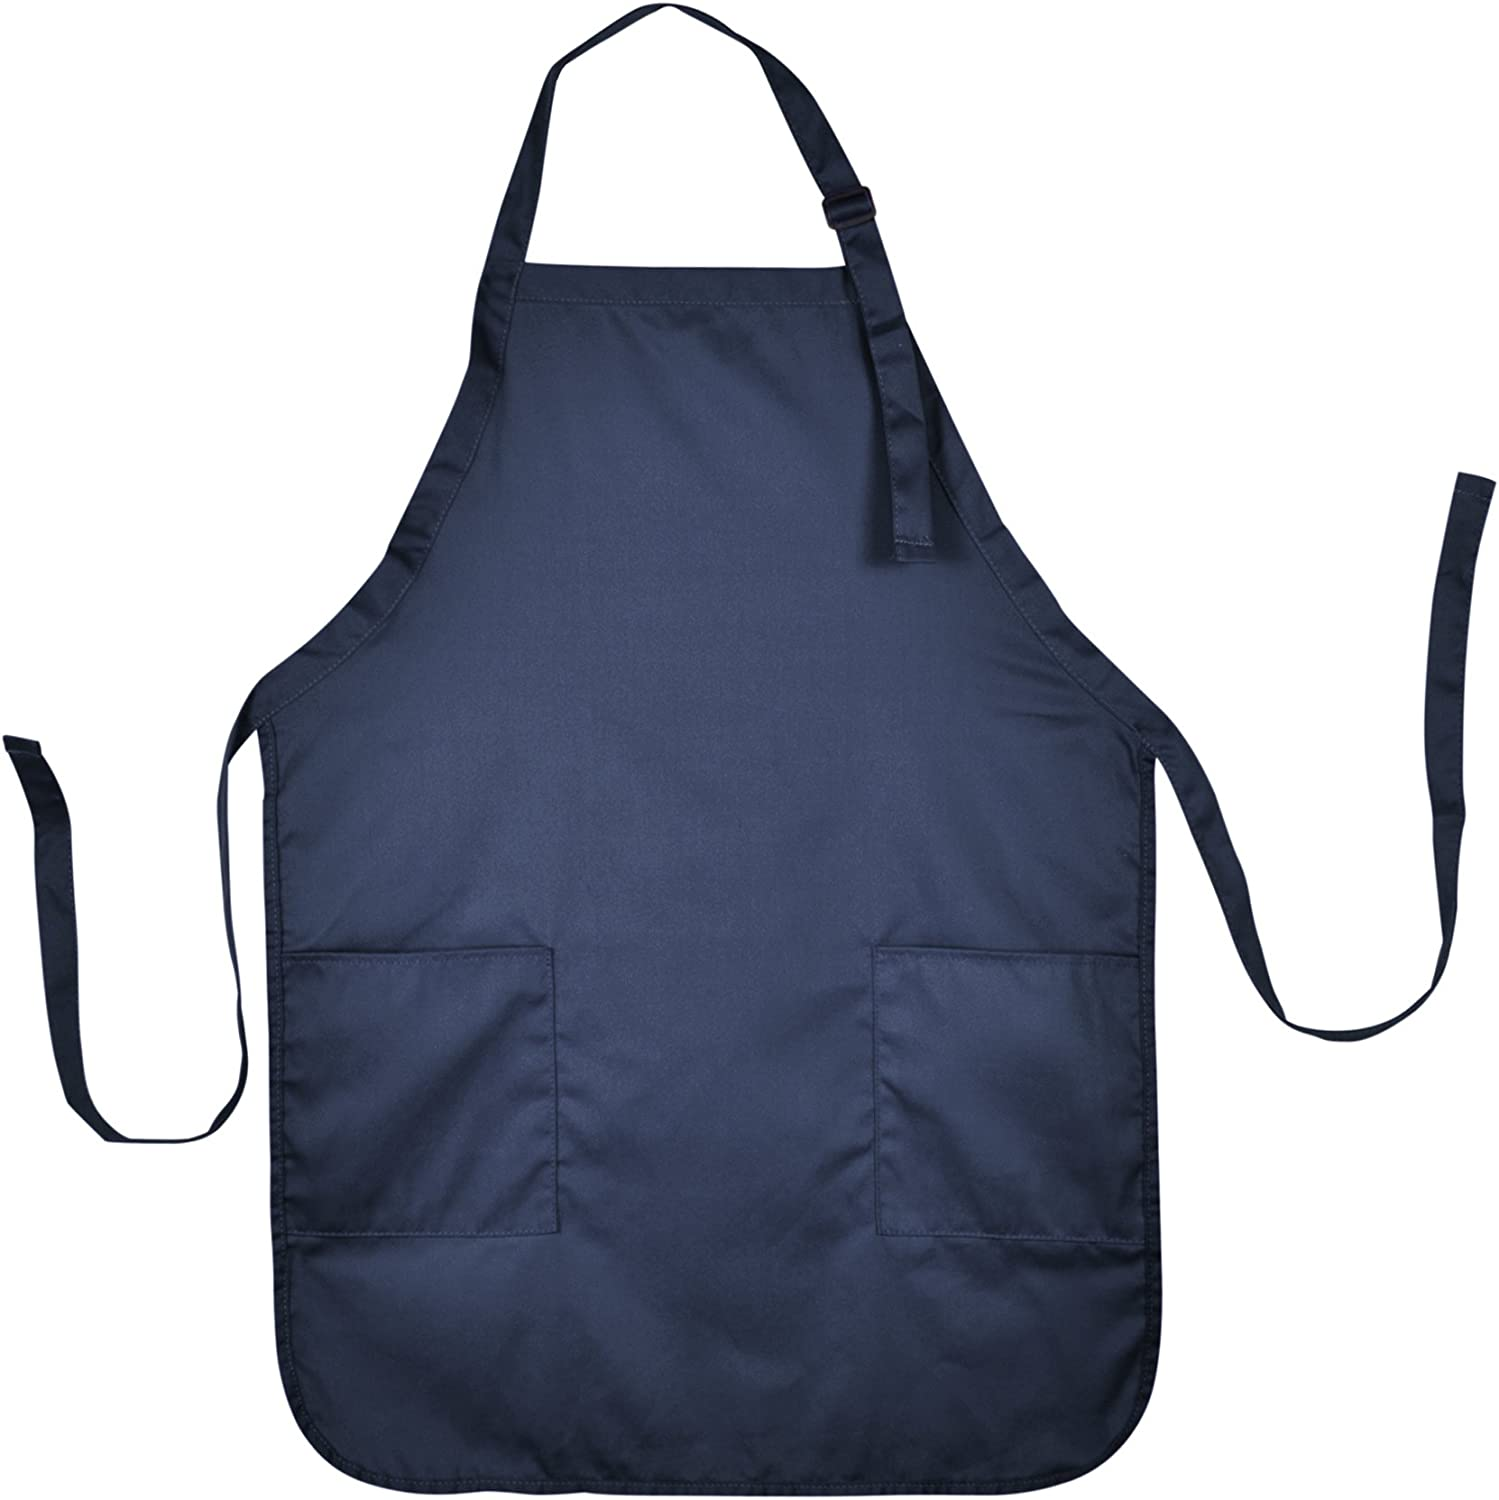 DALIX Apron Commercial Restaurant Home Bib Spun Poly Cotton Kitchen Aprons (2 Pockets) in Navy Blue